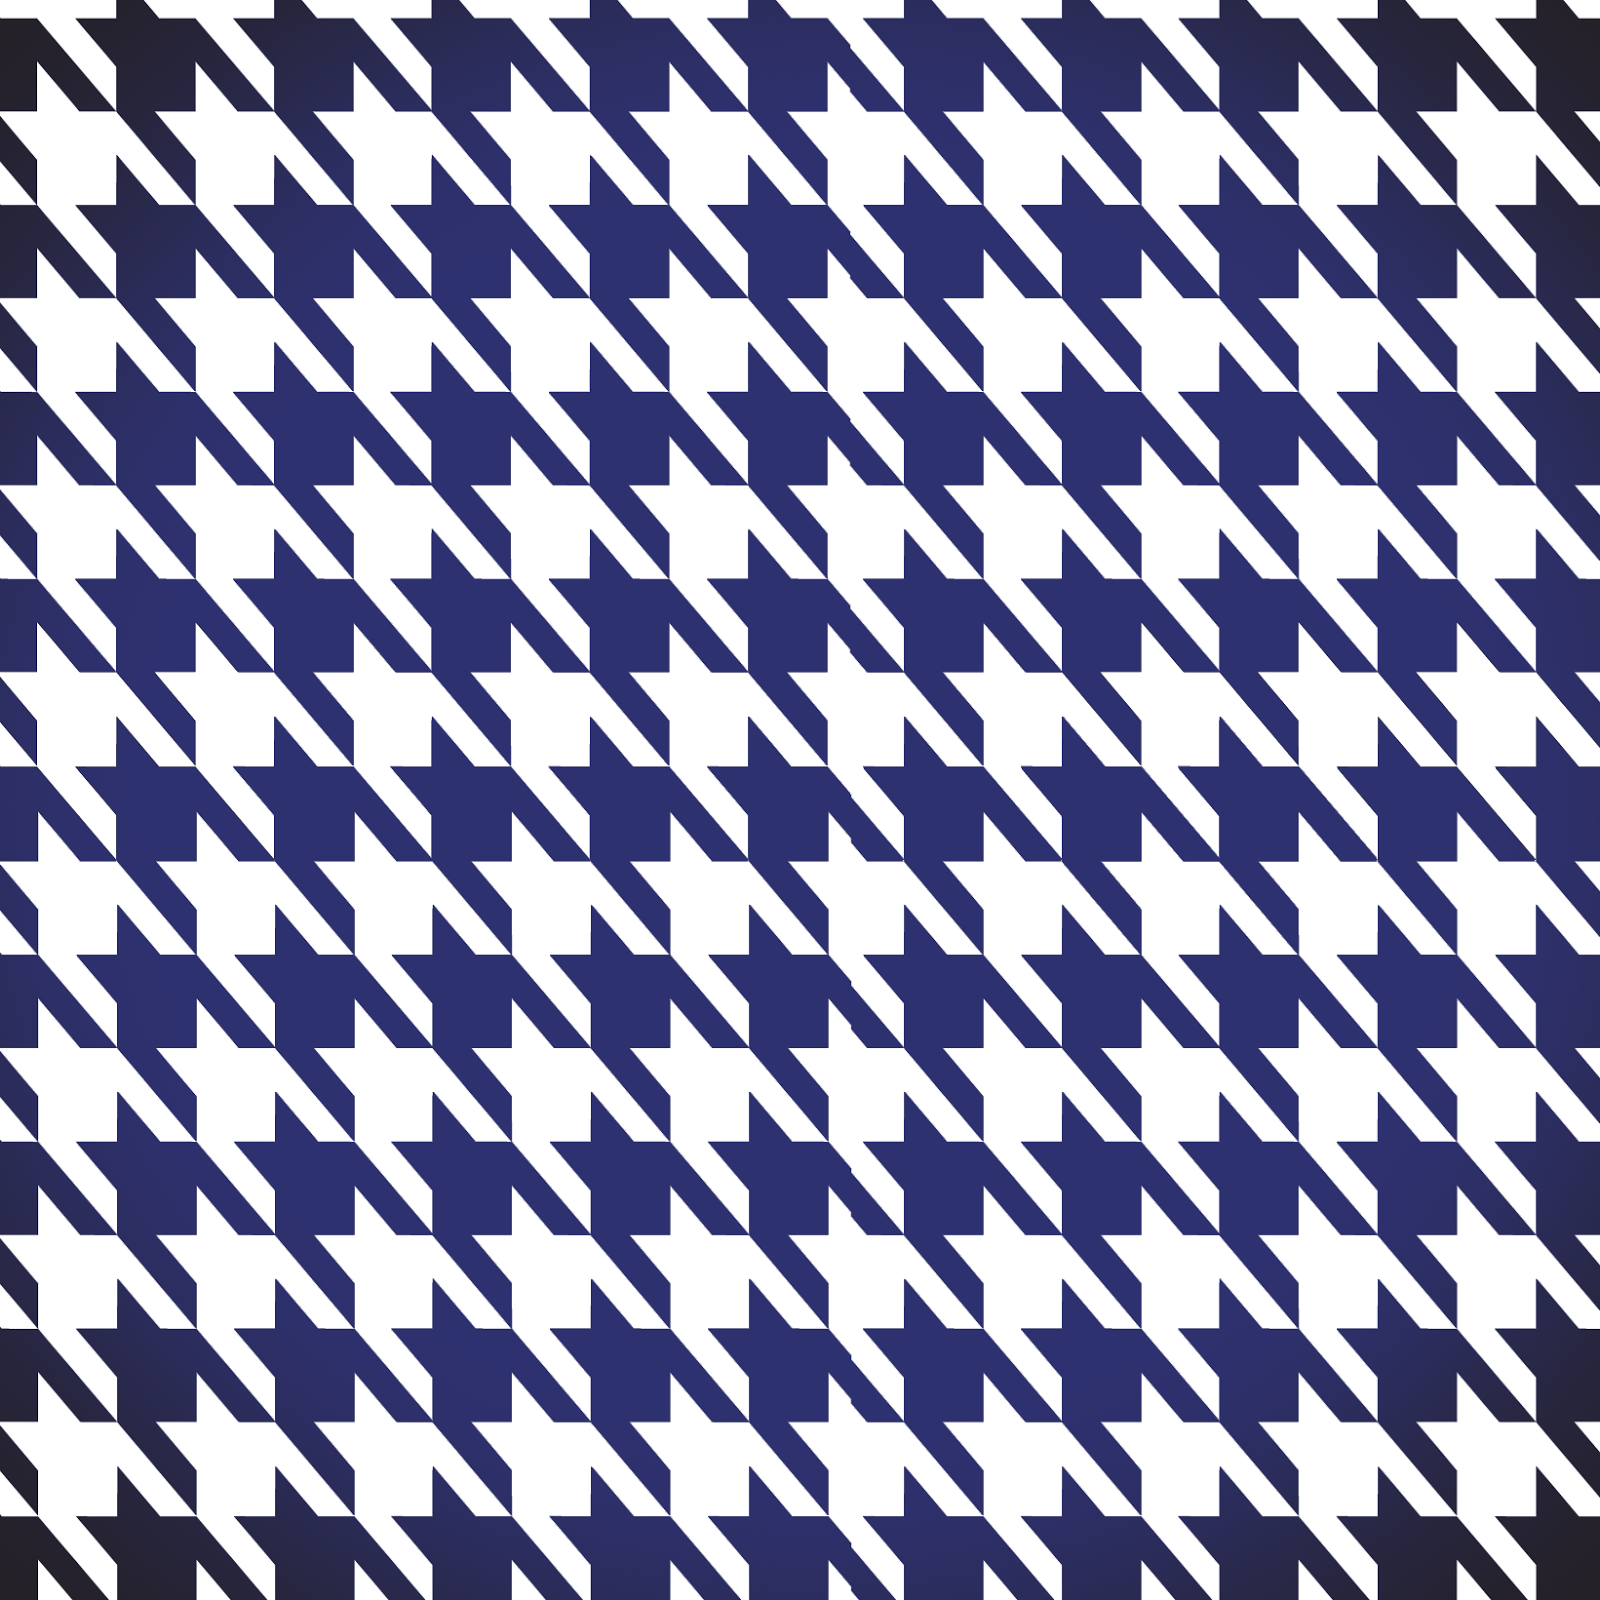 Dark Blue and White Quilt navy+blue+houndstooth+ombre